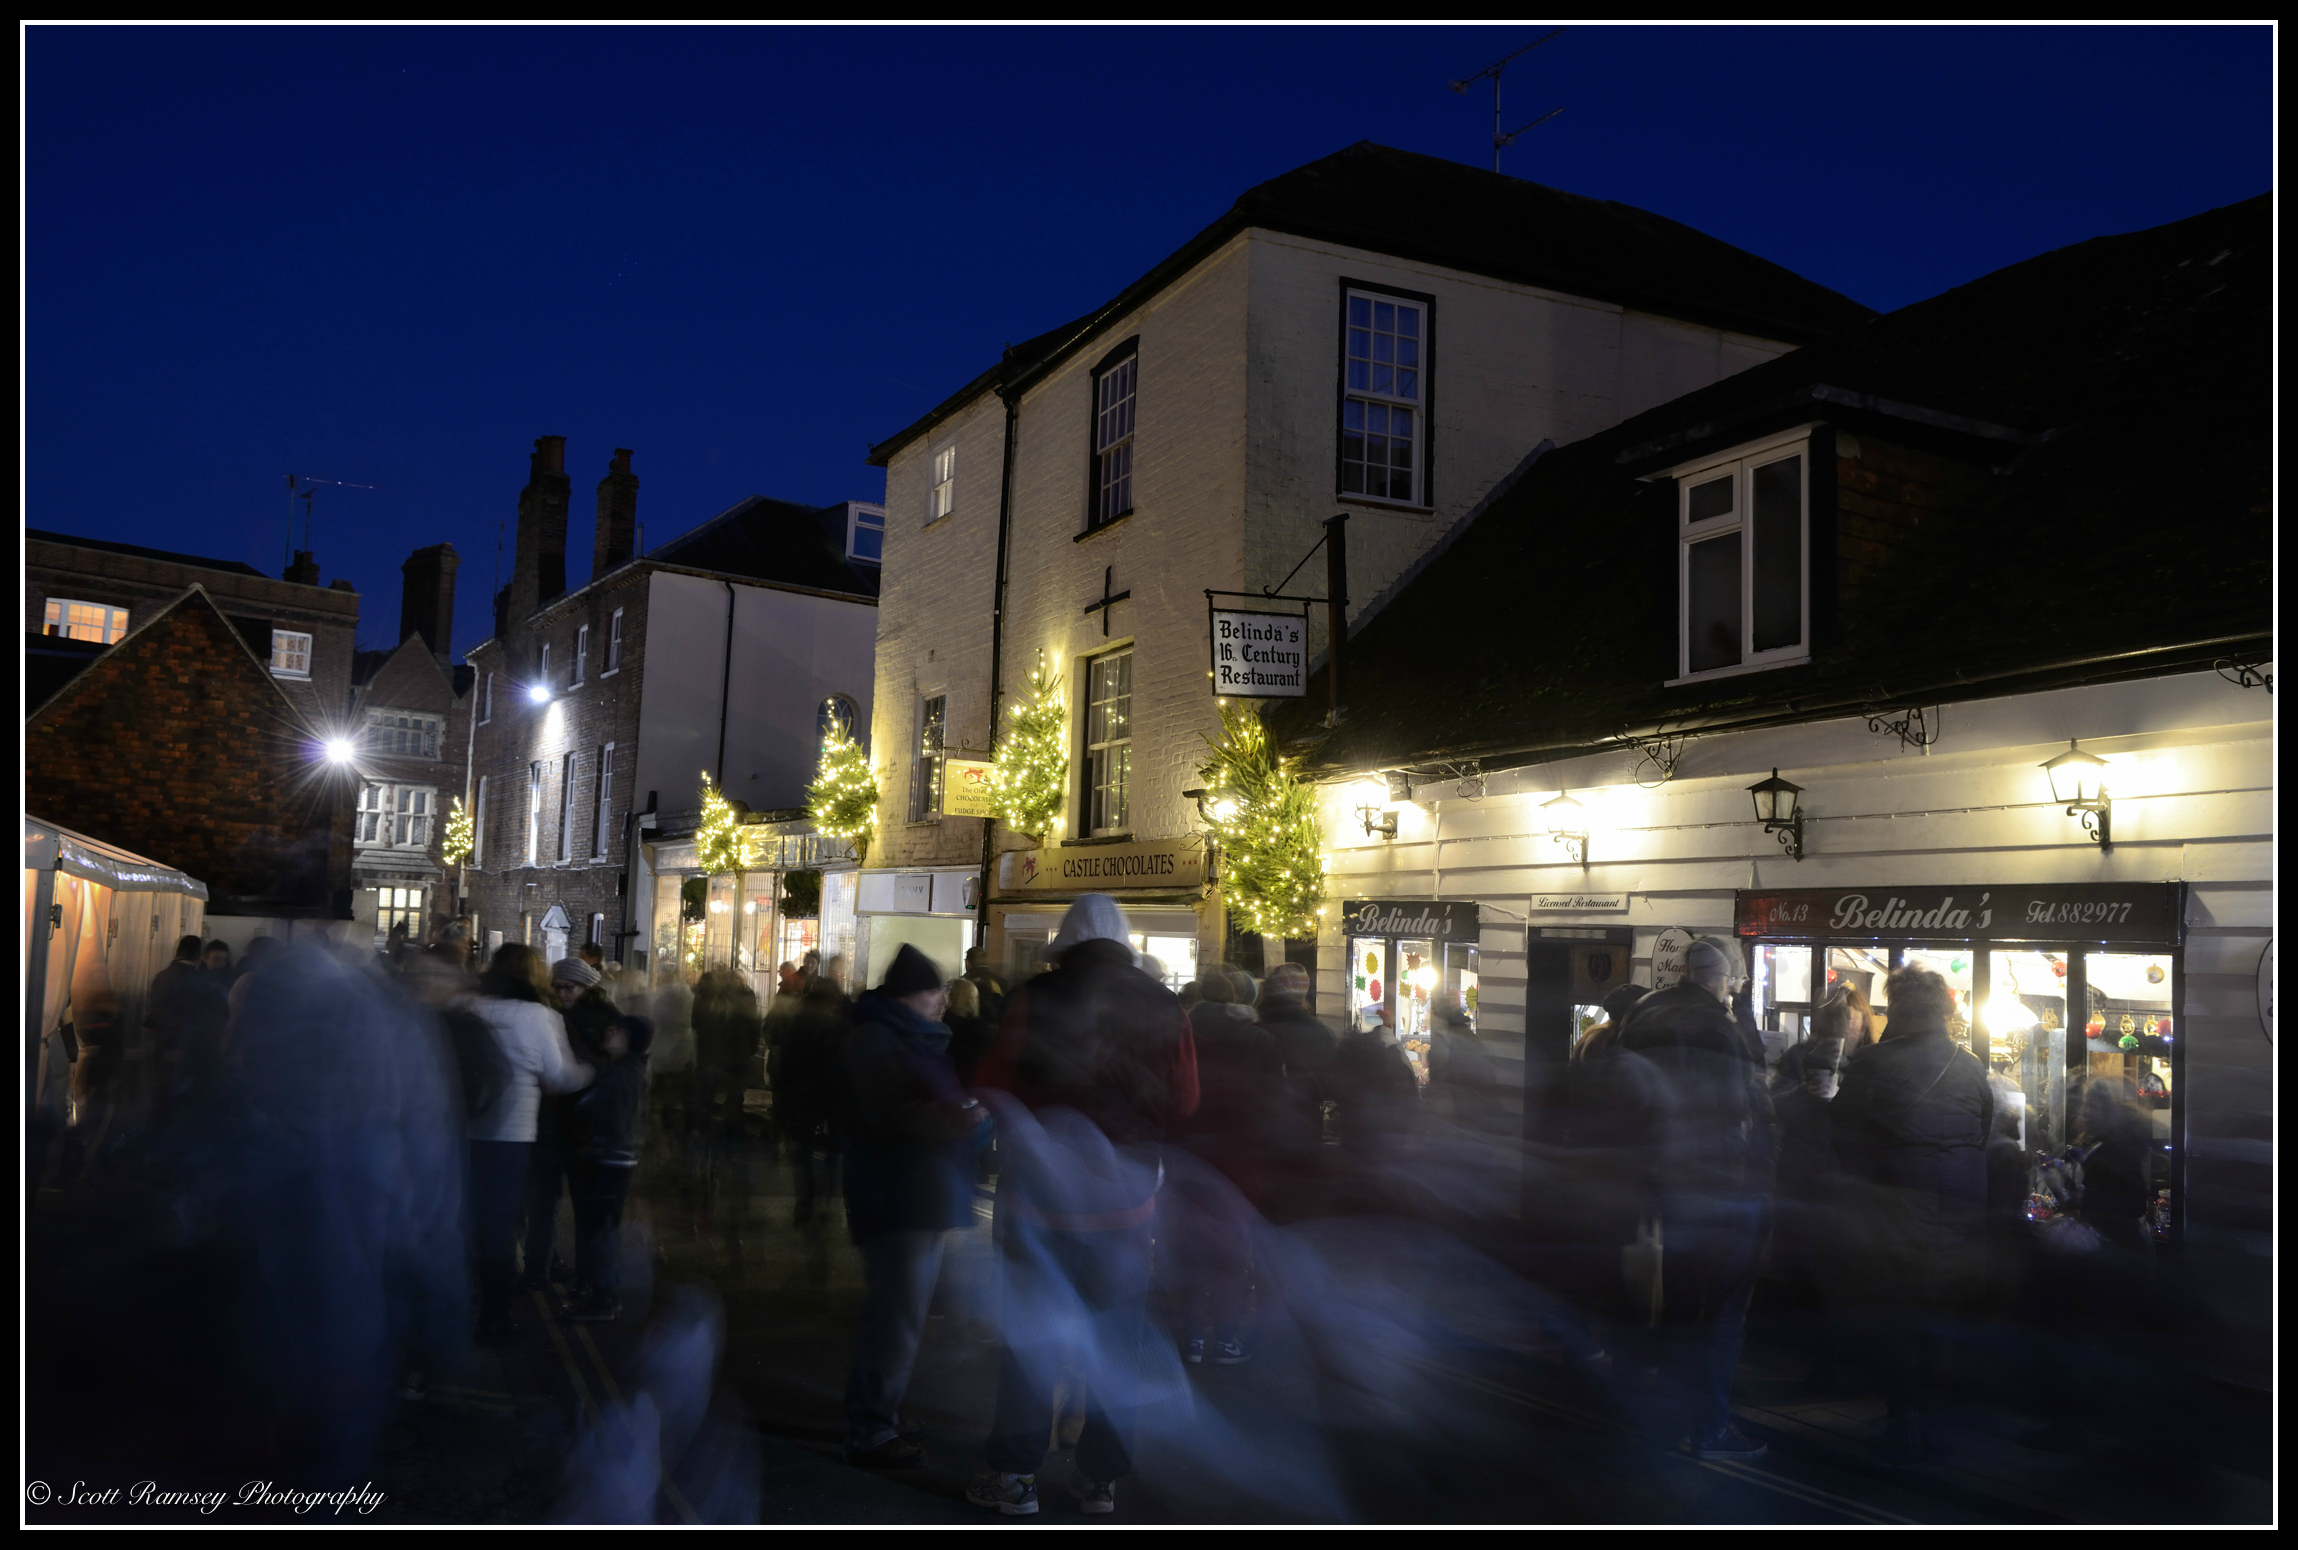 People looked blurred as they walk past the camera in this photograph taken at night during the Arundel By Candlelight Christmas event.